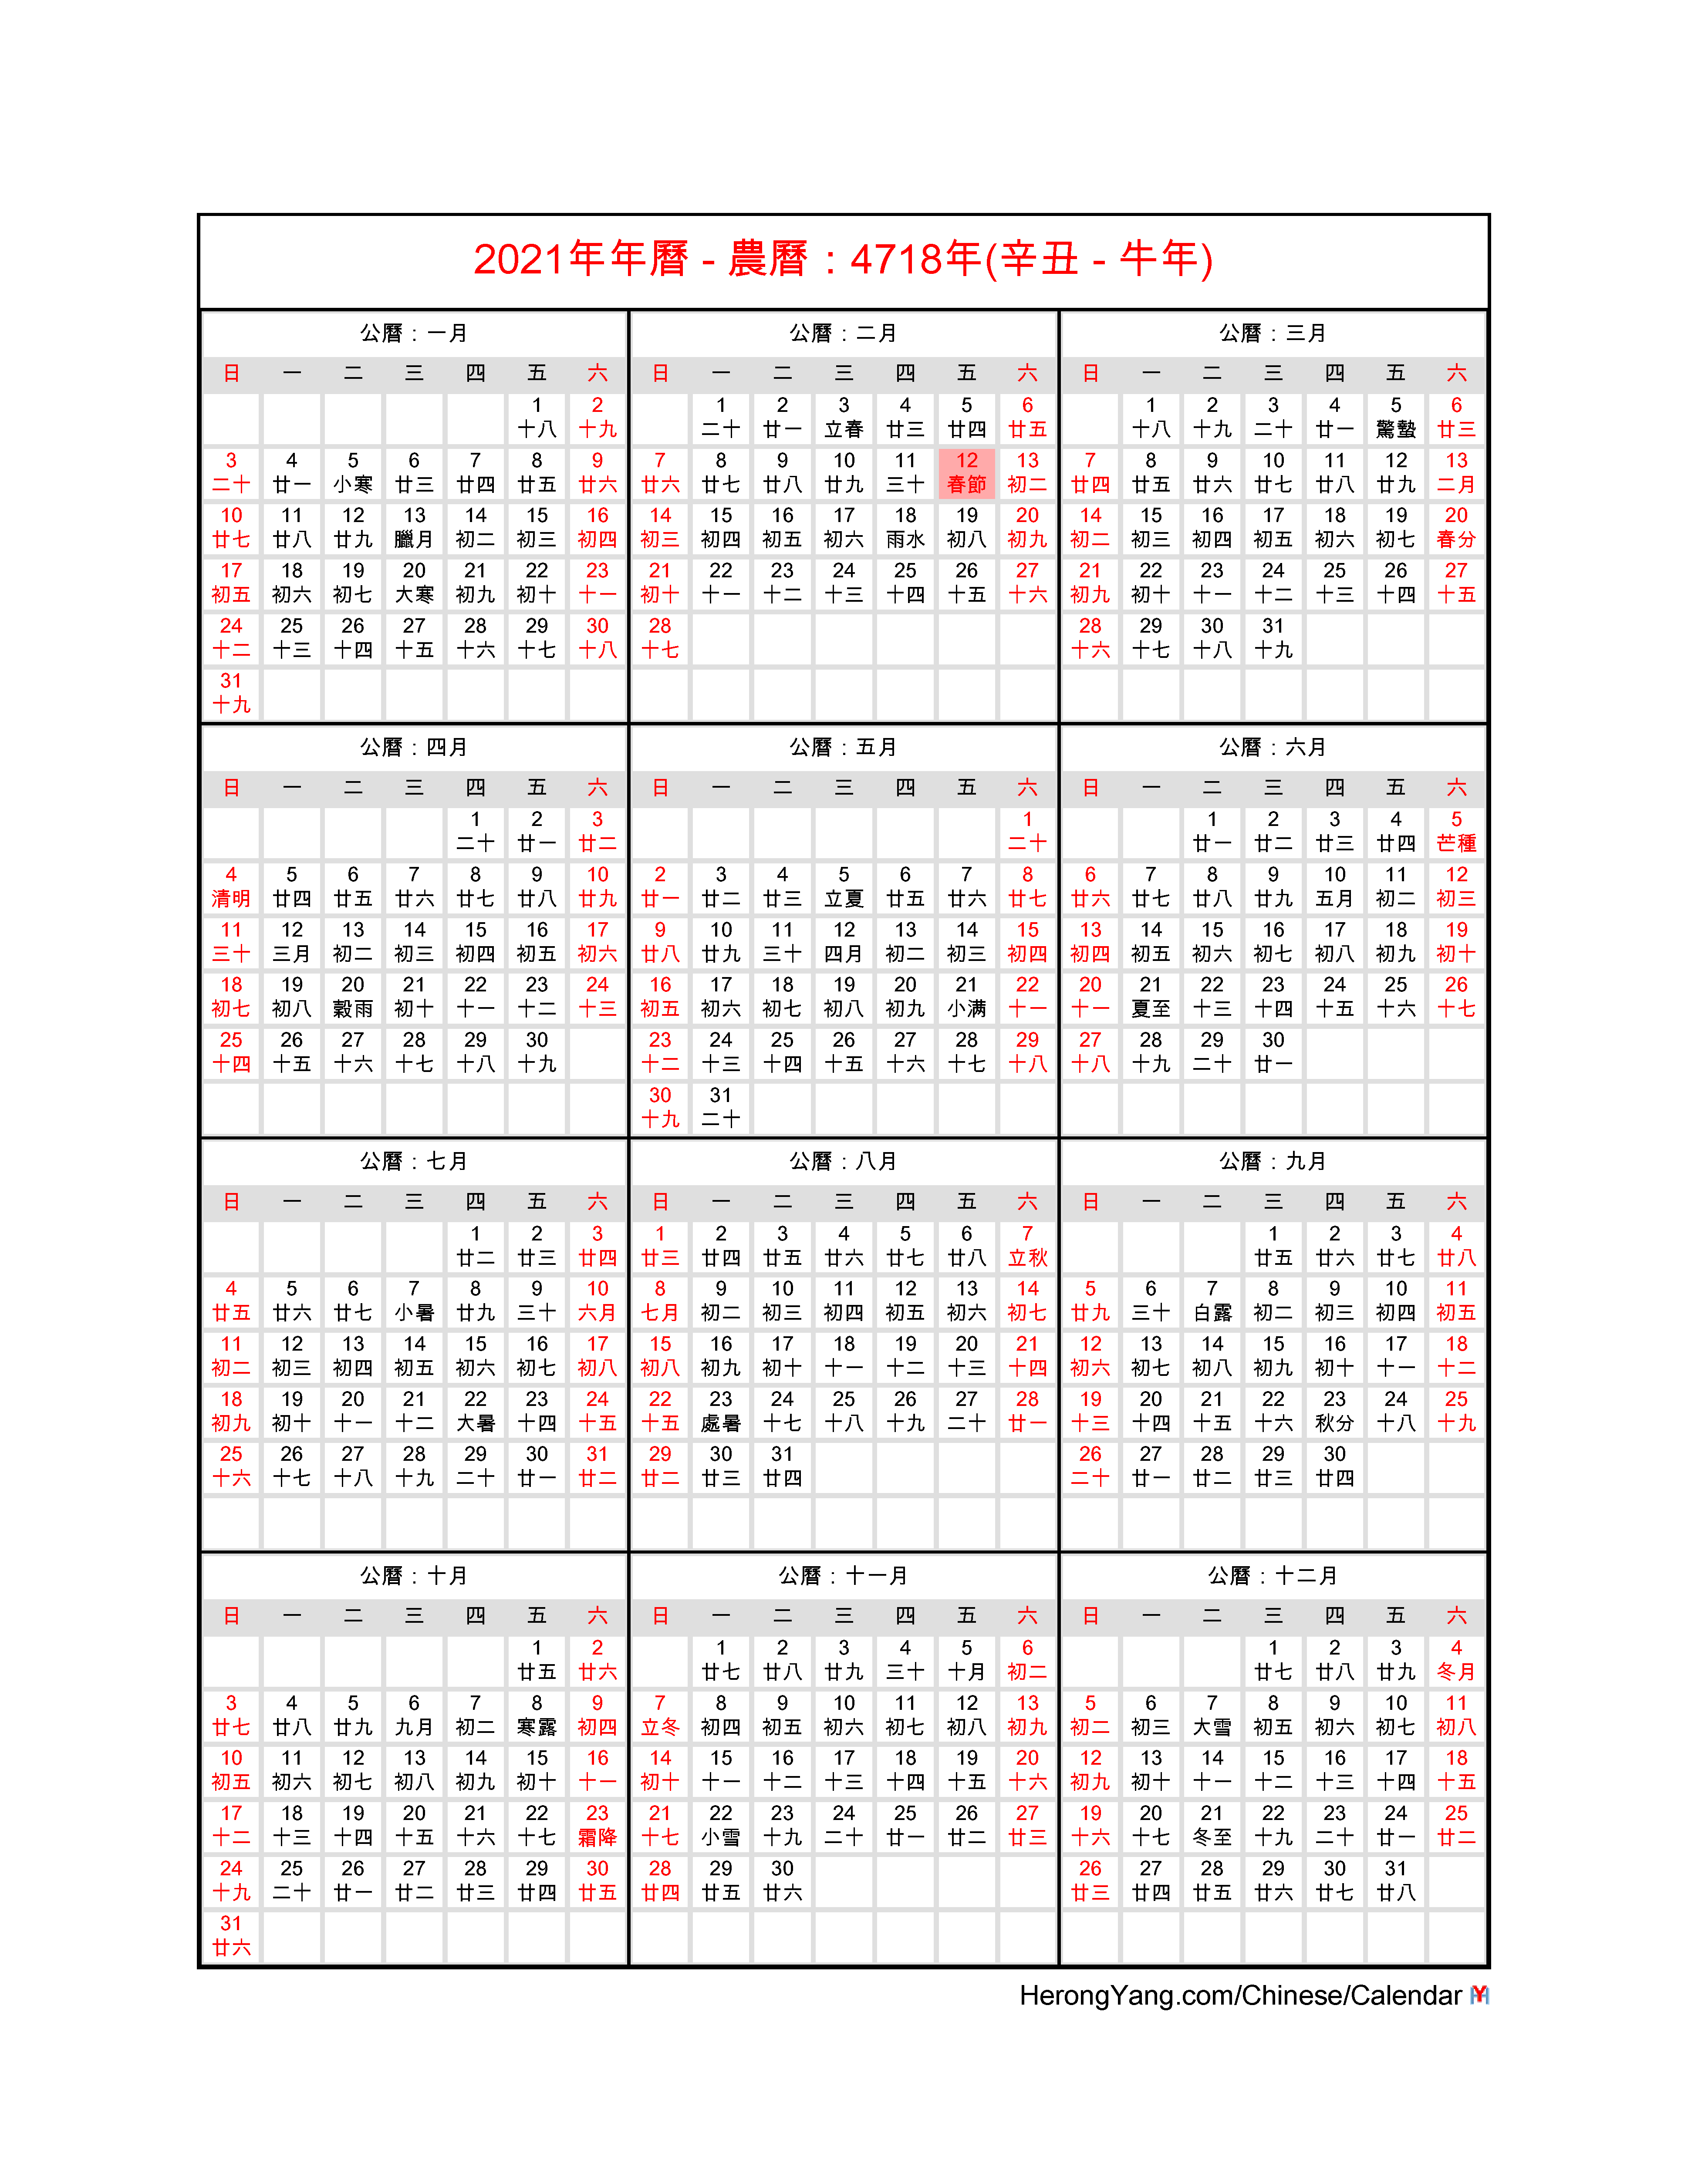 Chinese Lunar Calendar 2022.Free Chinese Calendar 2021 Year Of The Ox